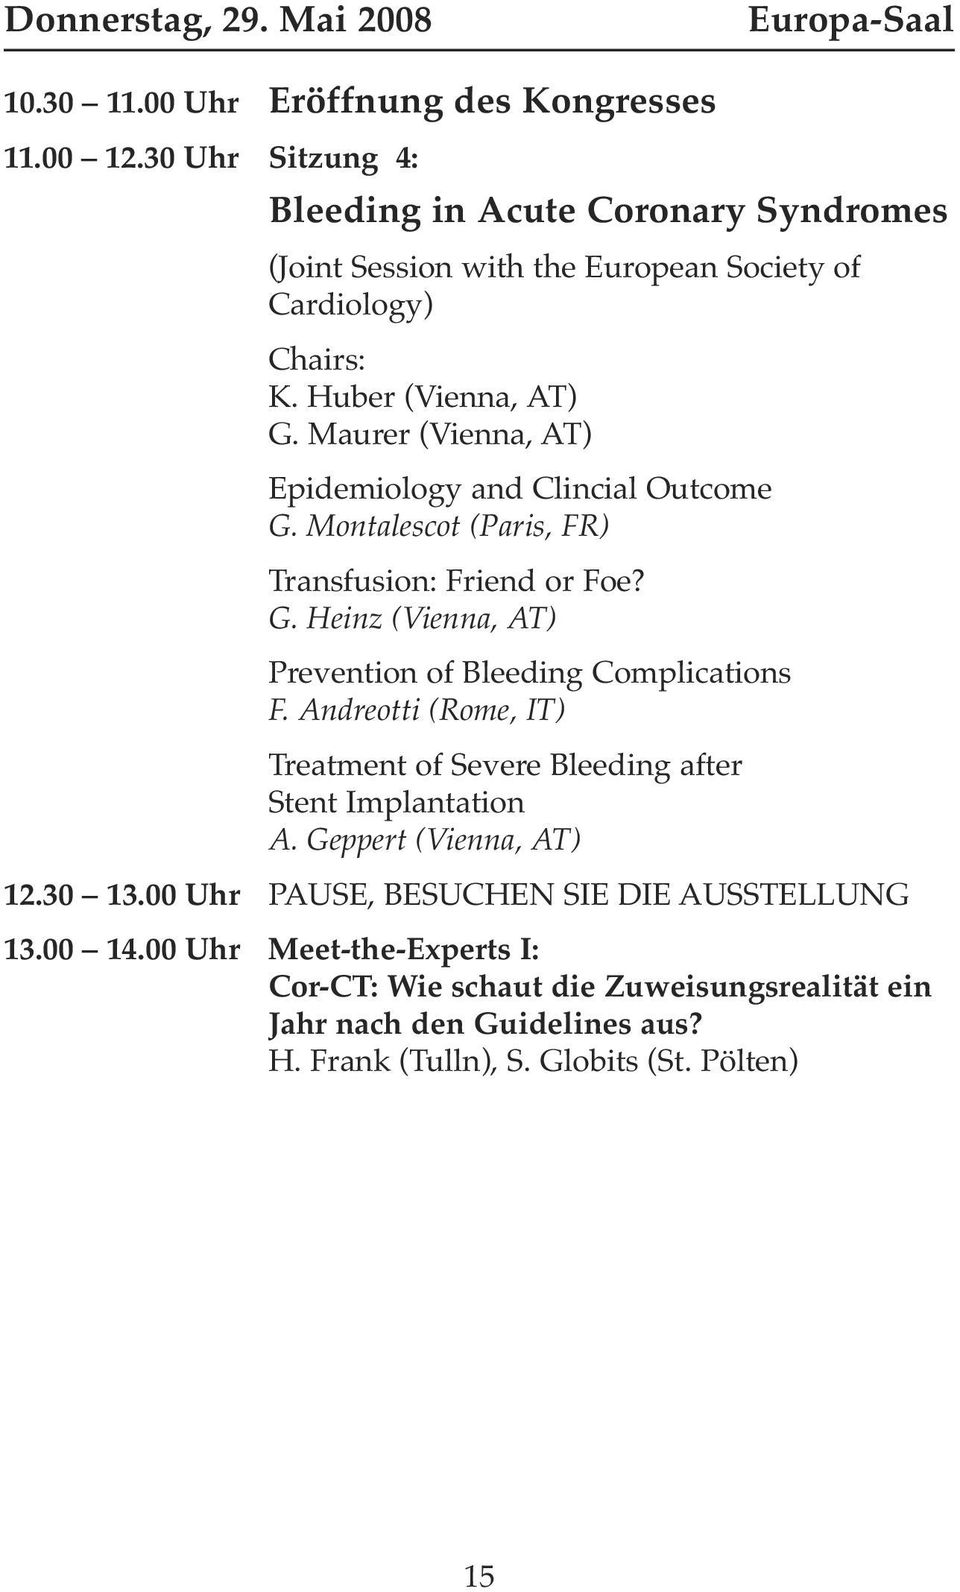 Maurer (Vienna, AT) Epidemiology and Clincial Outcome G. Montalescot (Paris, FR) Transfusion: Friend or Foe? G. Heinz (Vienna, AT) Prevention of Bleeding Complications F.